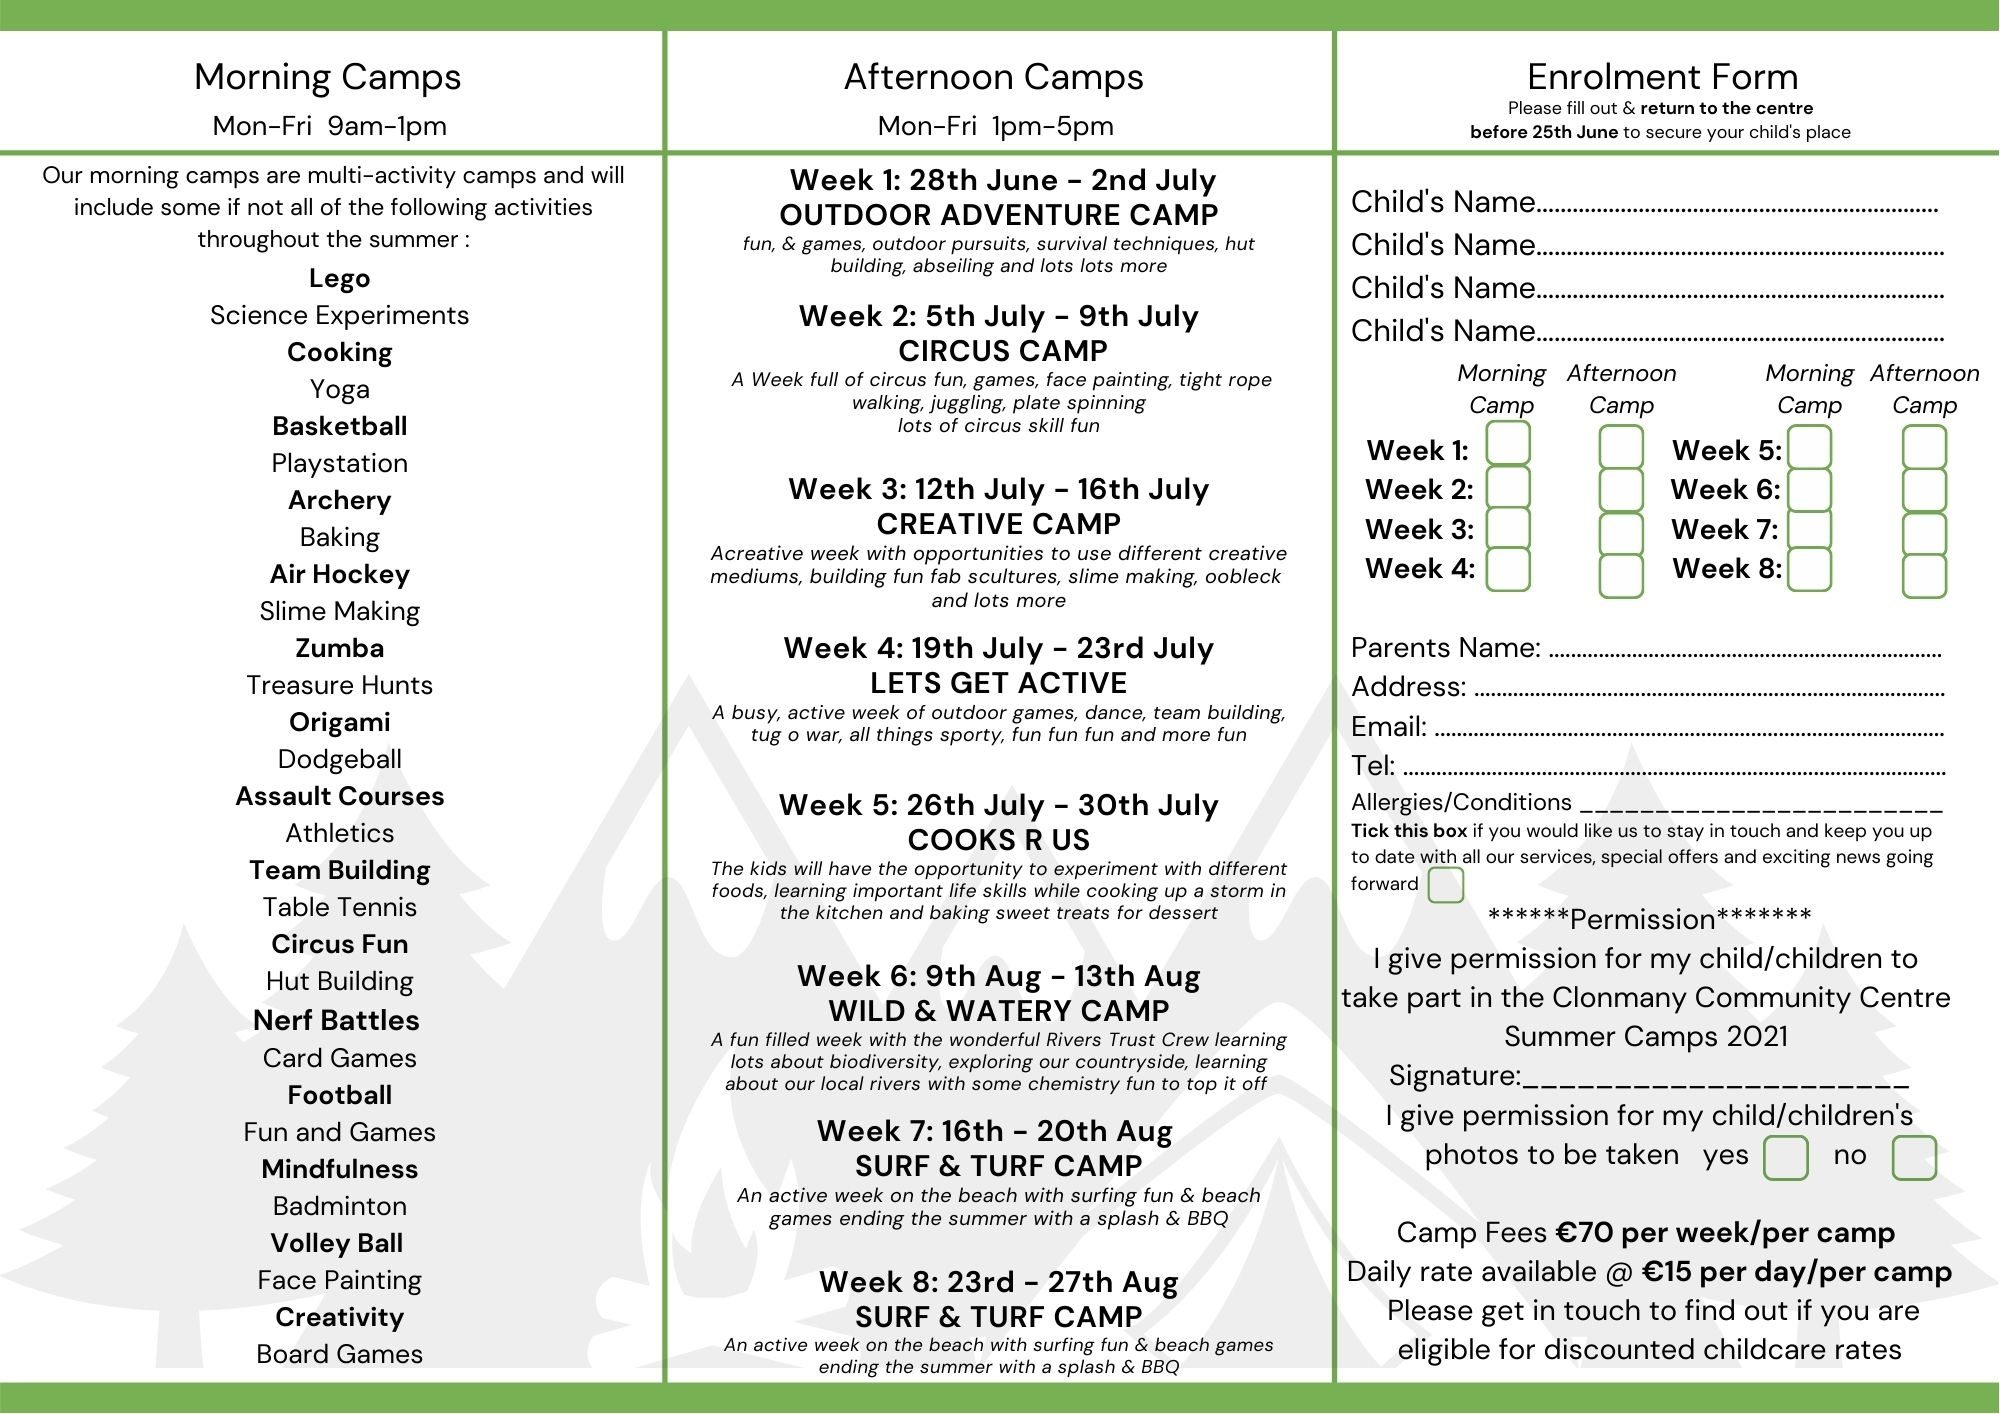 Image of Clonmany Community Centre Summer Camp 2021 Enrolment Form page 2